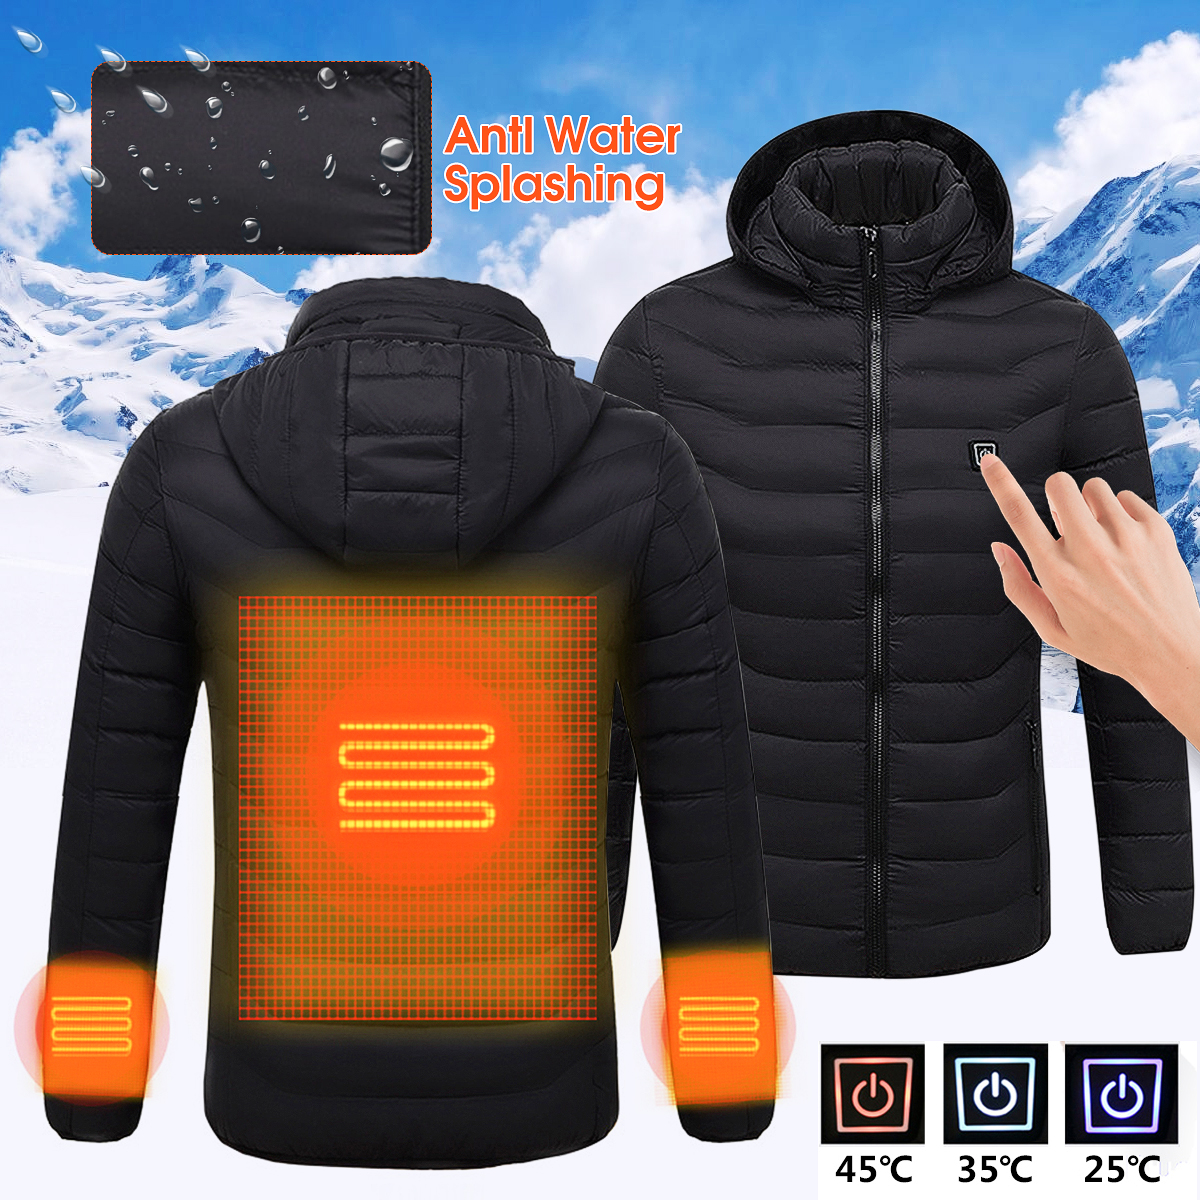 Mens Winter Heated USB Hooded Work Jacket Coats Adjustable Temperature Control Safety Clothing mens winter heated usb charge hooded work jacket coats vest adjustable temperature control safety clothing